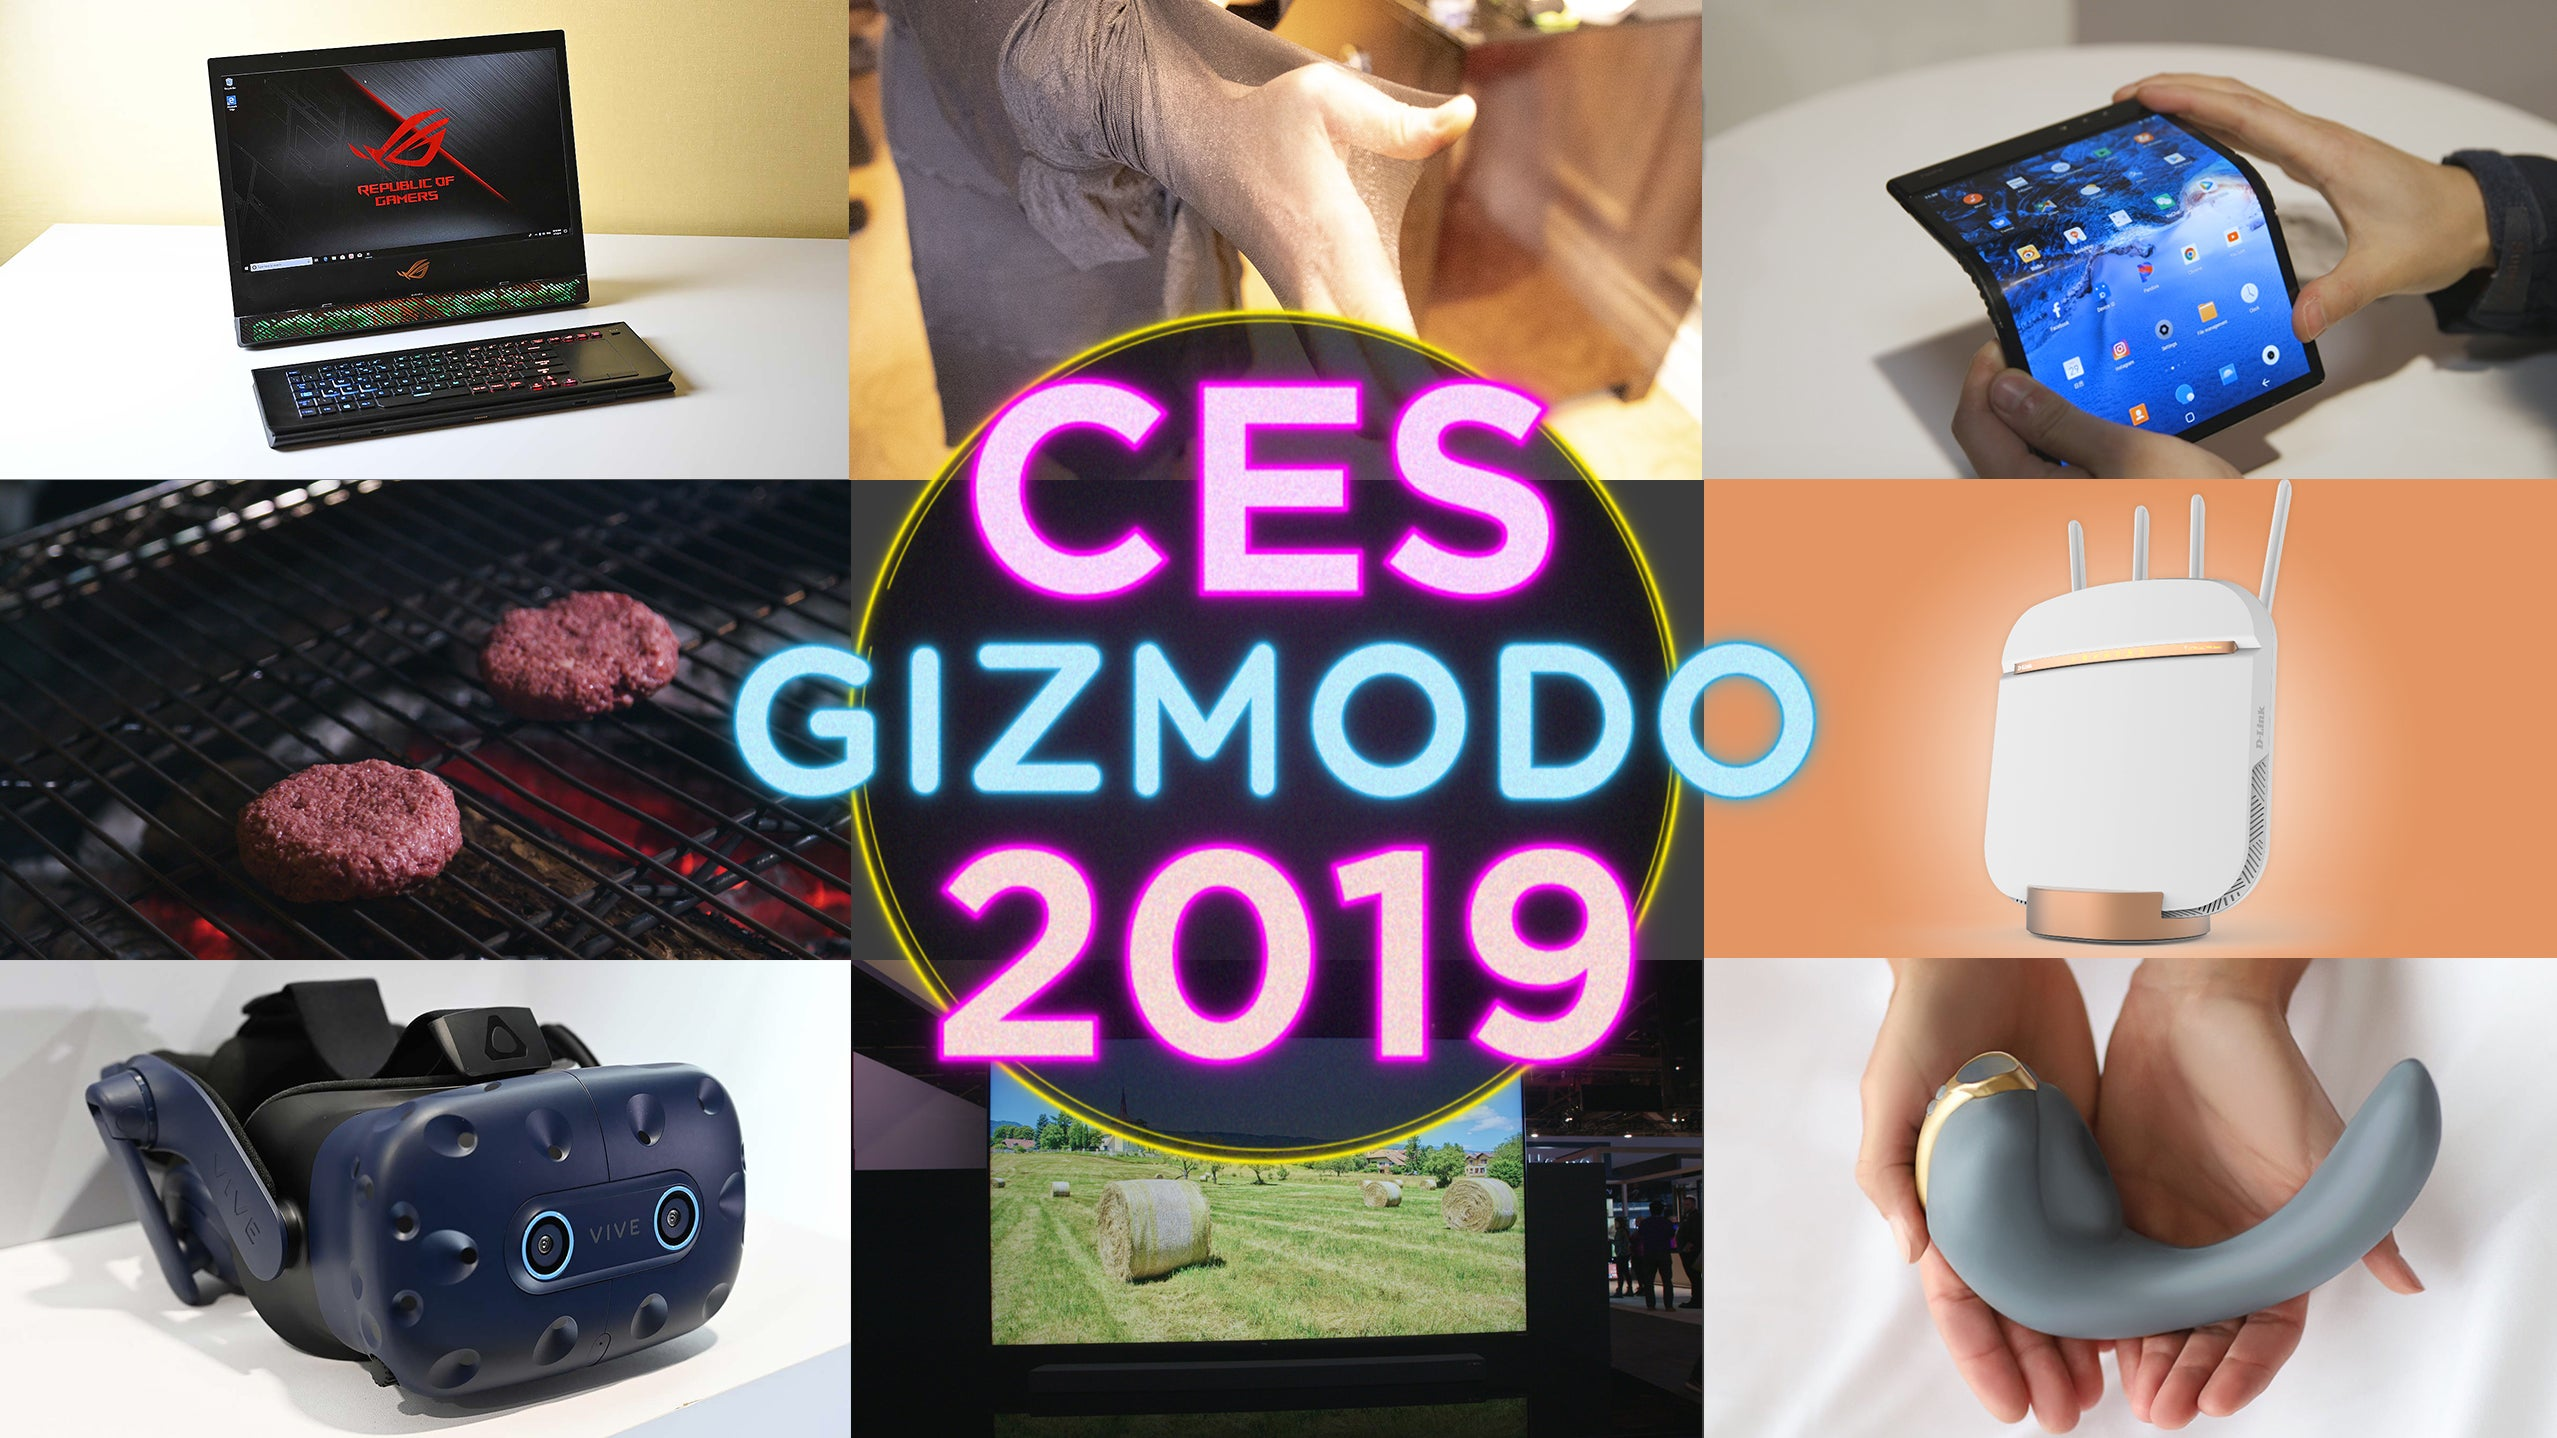 8k-tvs asus best-of-ces ces-2019 d-link impossible-burger lg soundbars the-north-face vive vizio vr wireless-power